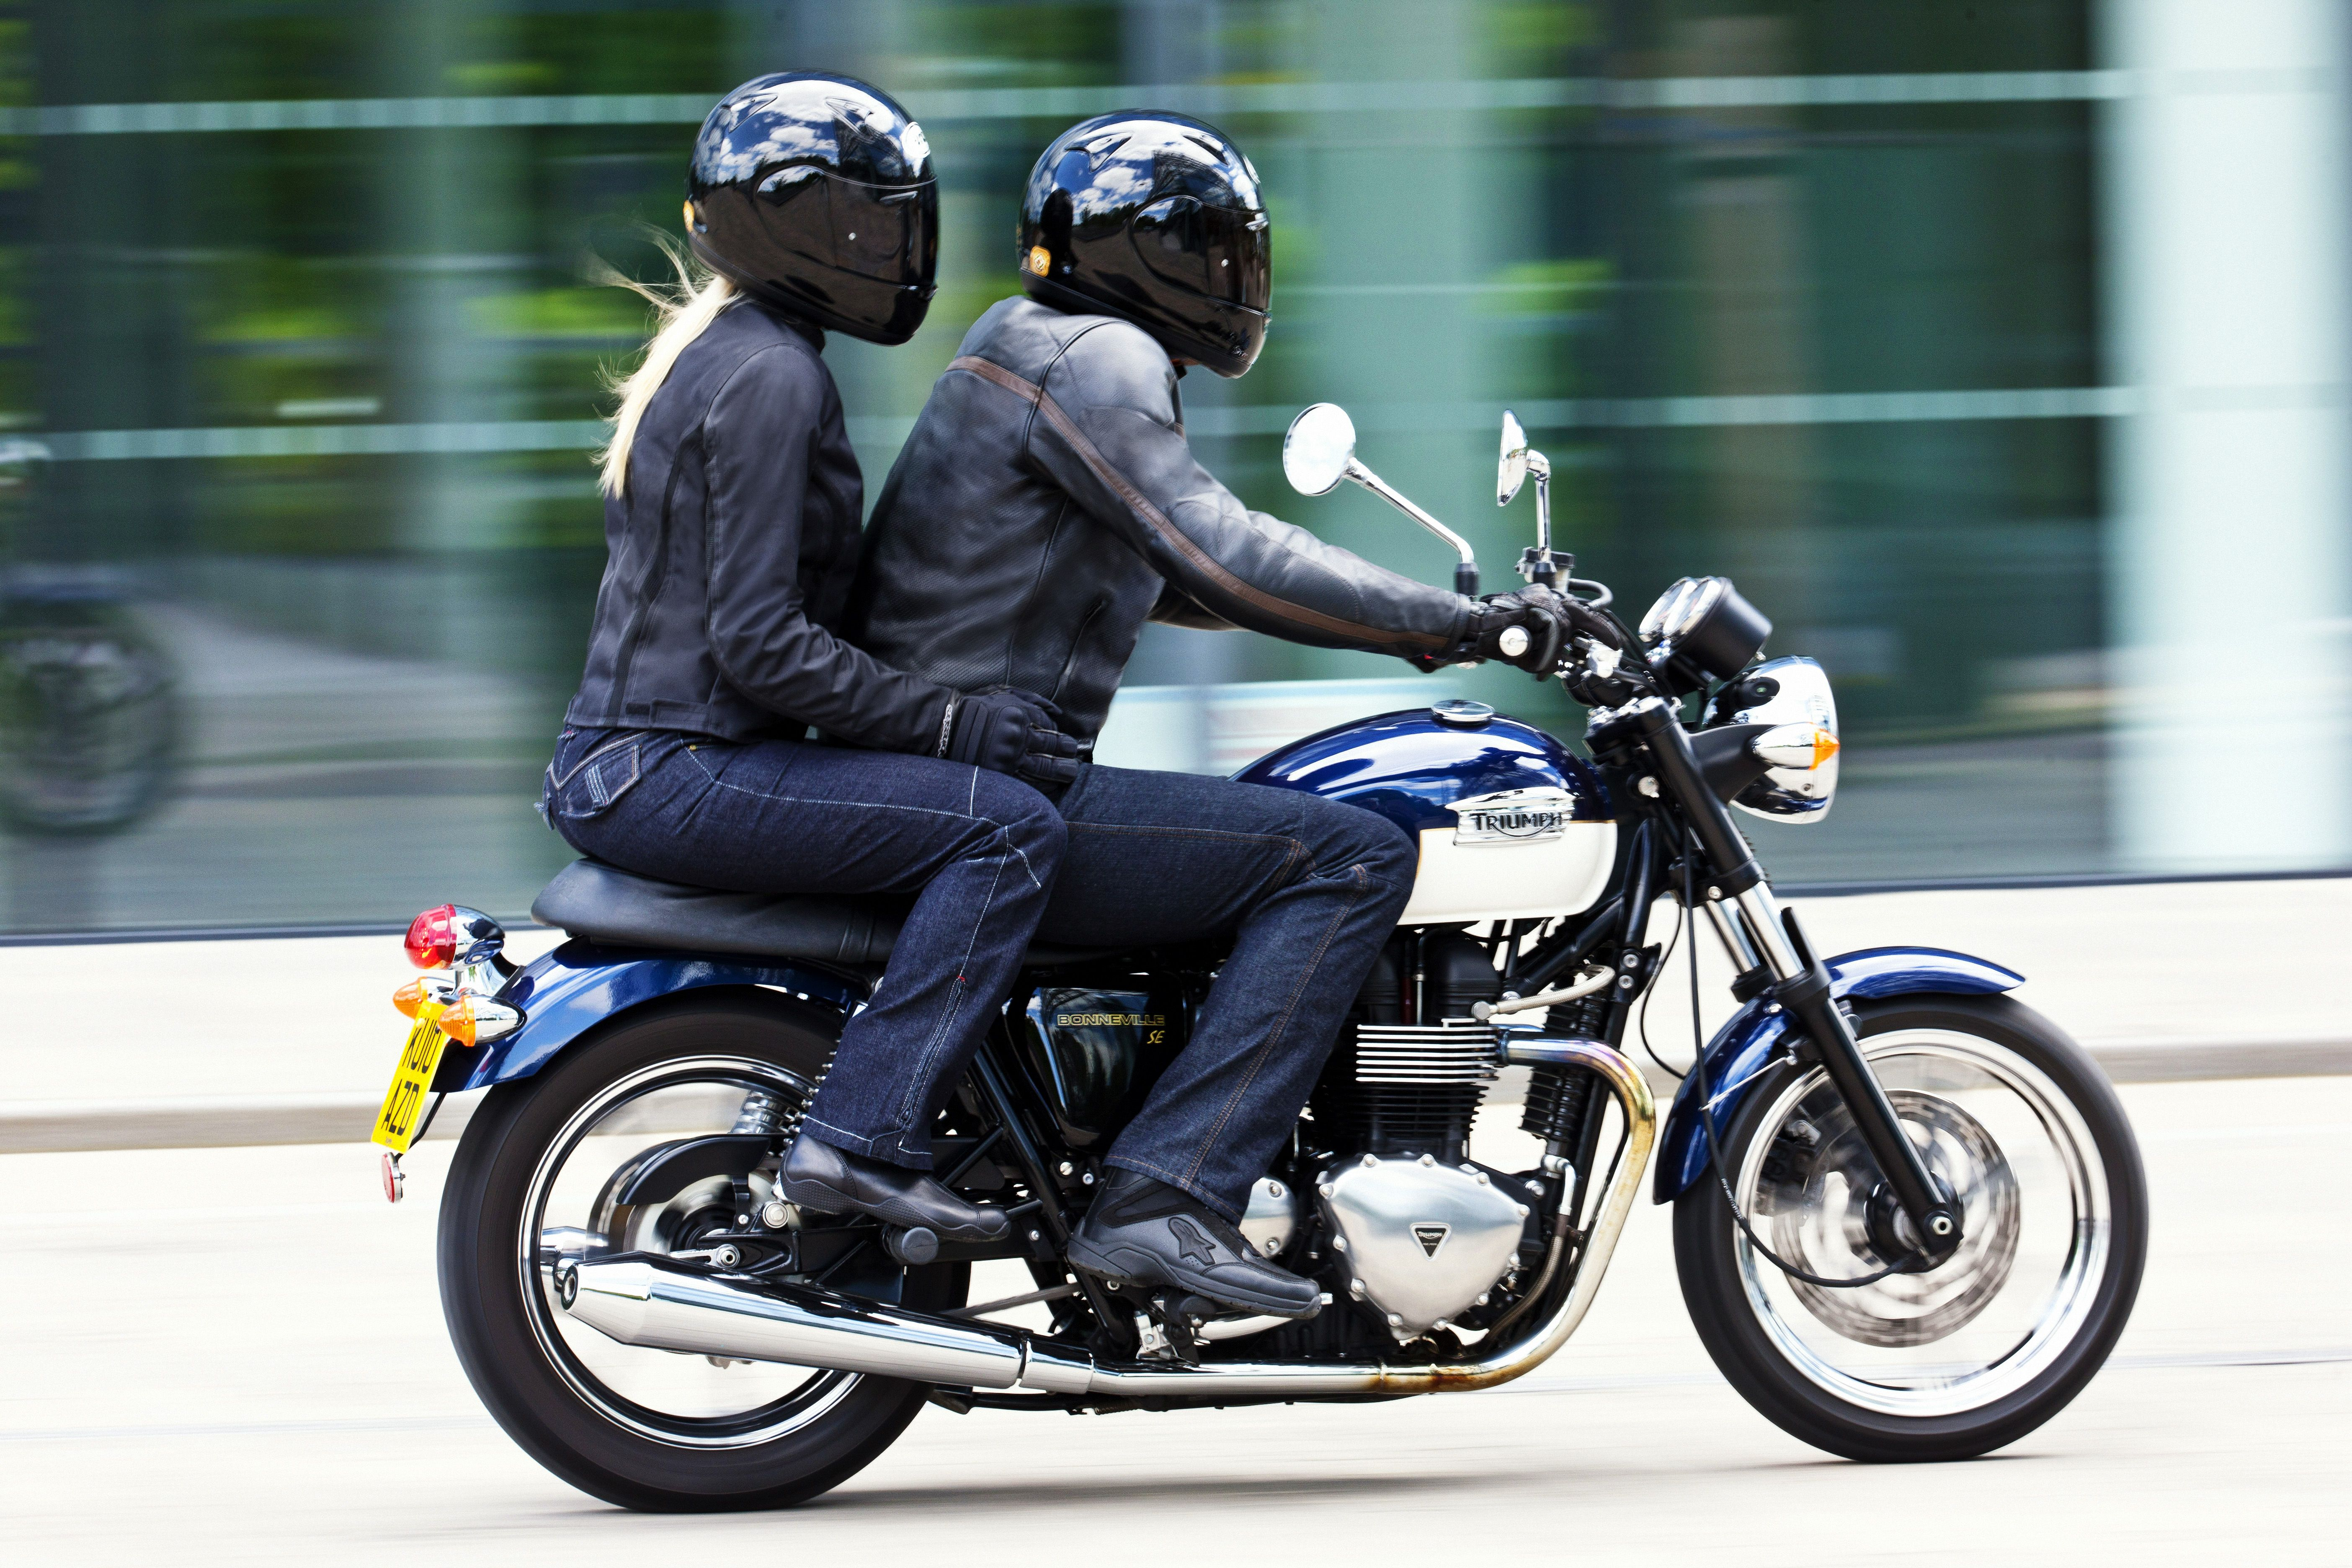 Honda CD125 Brat Style Cafe Racer (With images) | Cafe